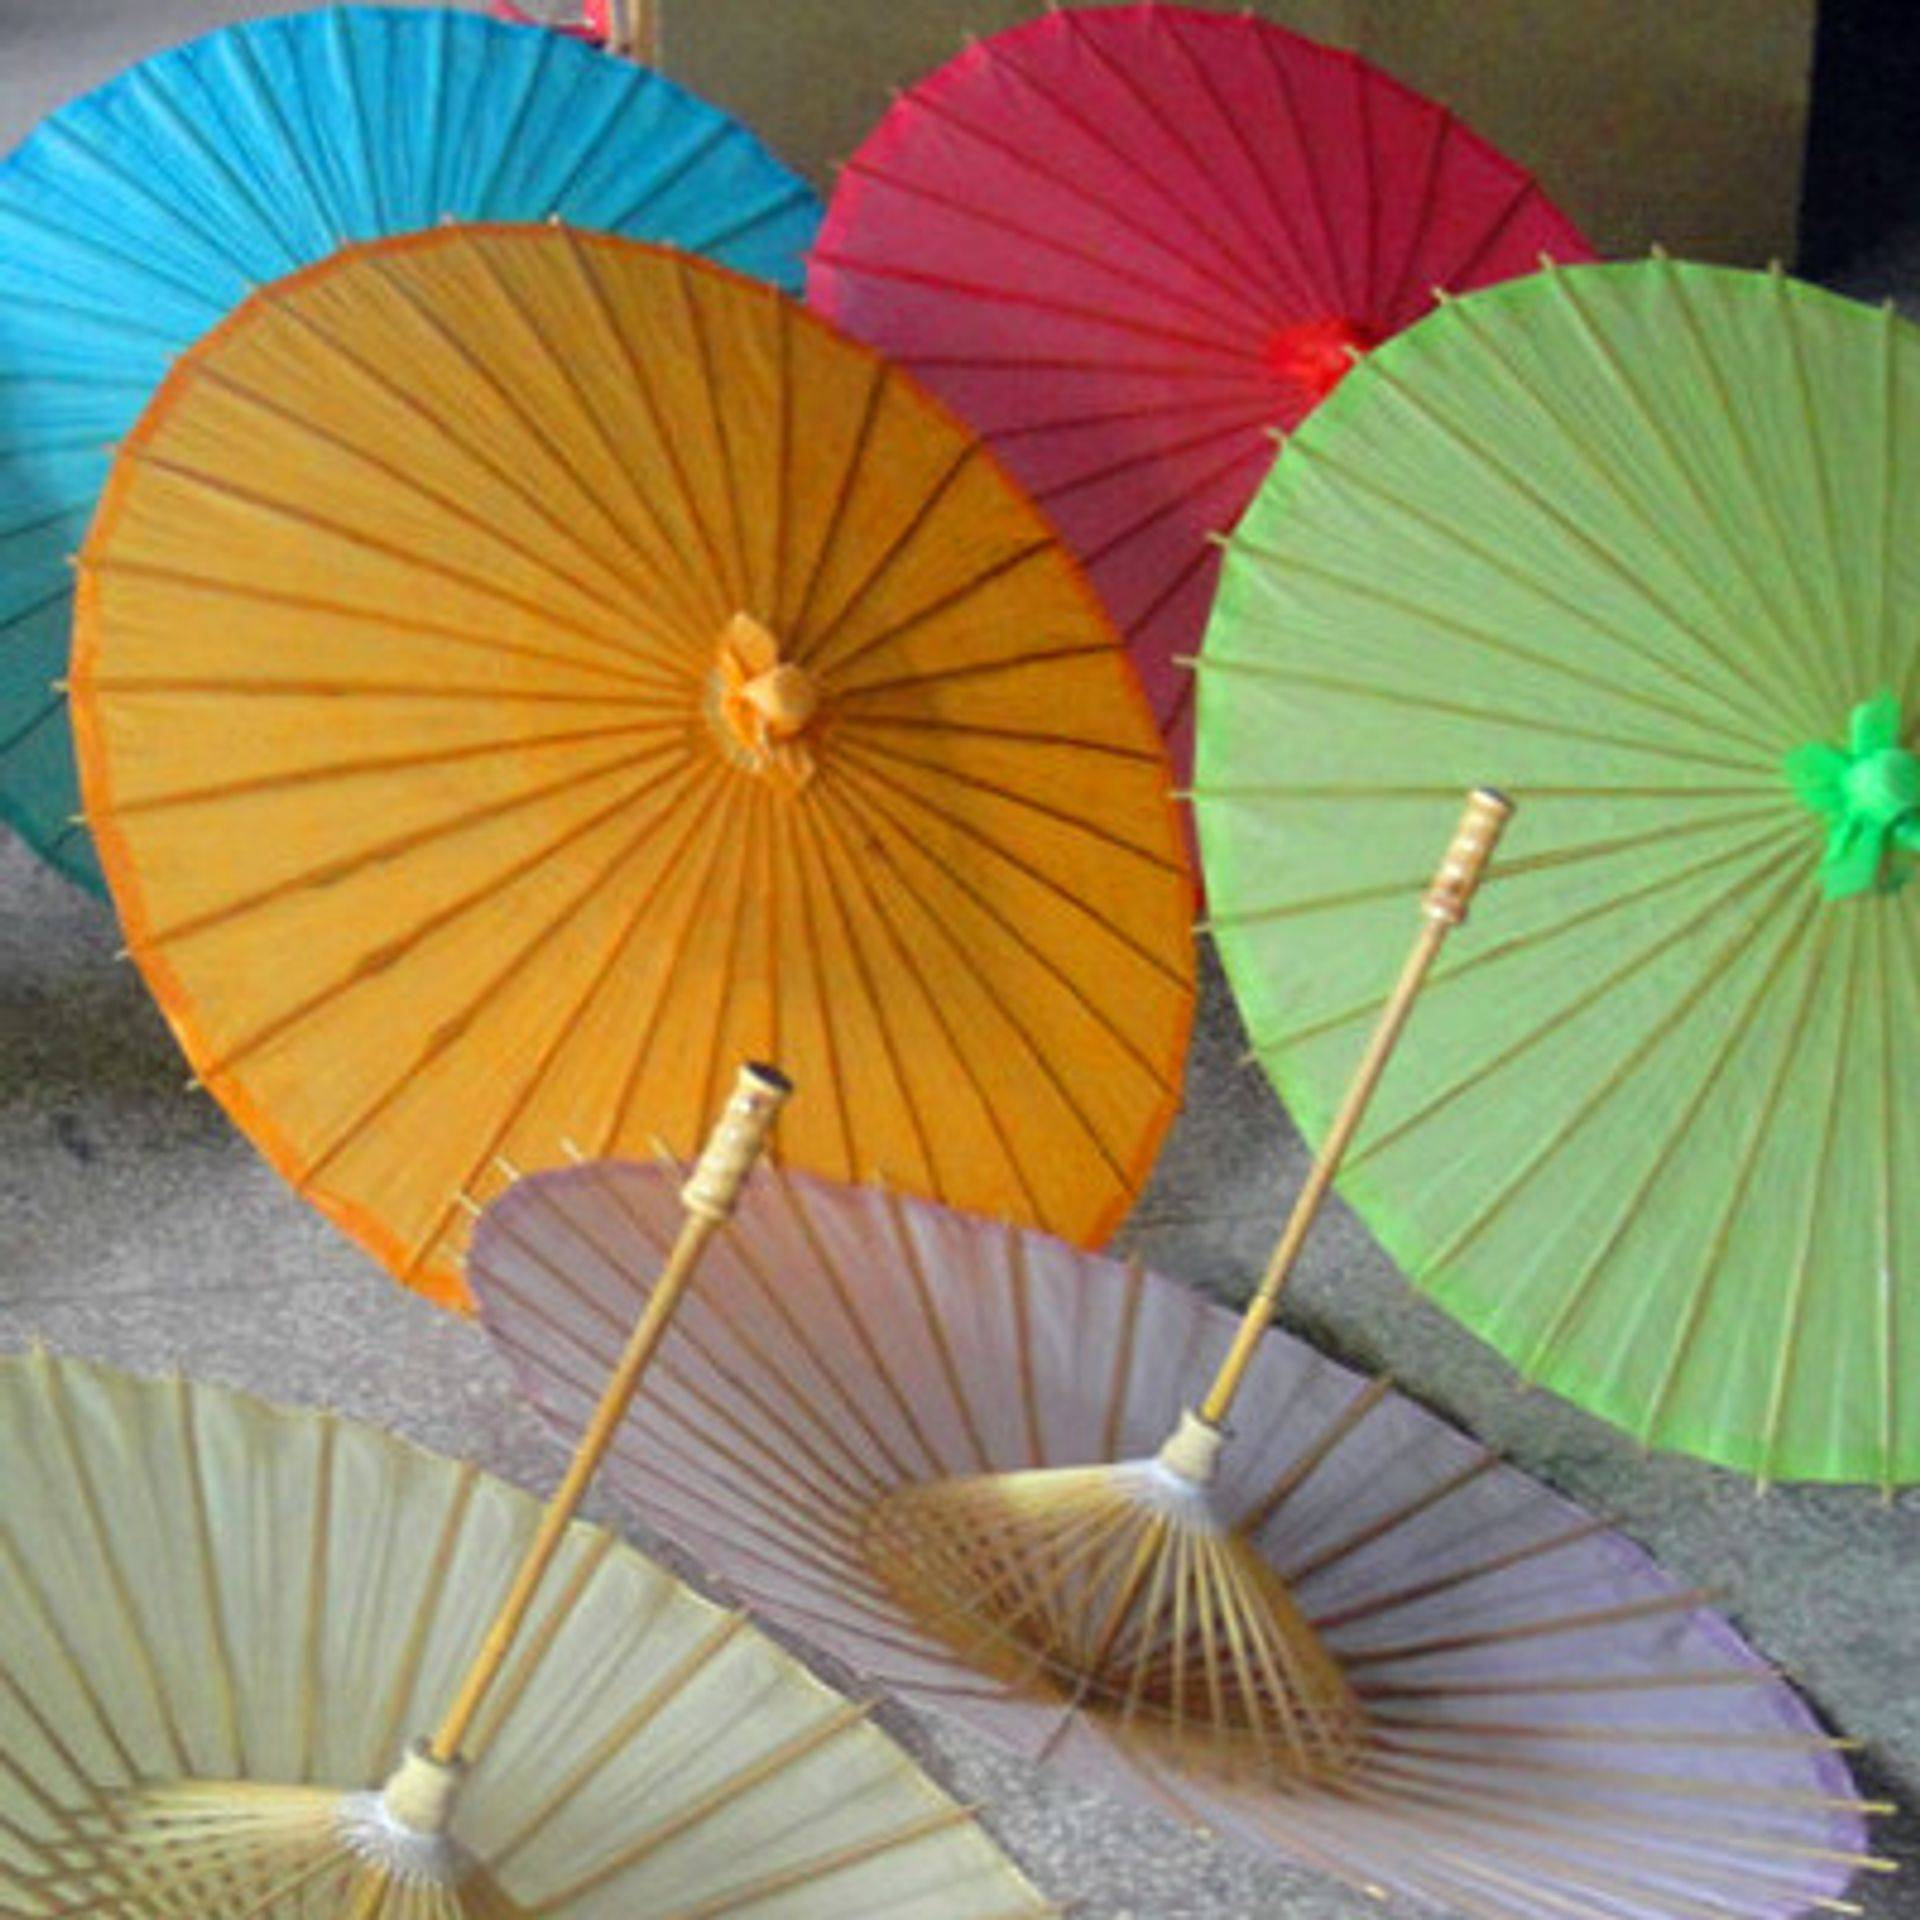 paper parasols for sale 1-16 of 286 results for cheap parasols for sale sundale outdoor 9 feet steel patio umbrella table market umbrella with crank lift for garden, deck.